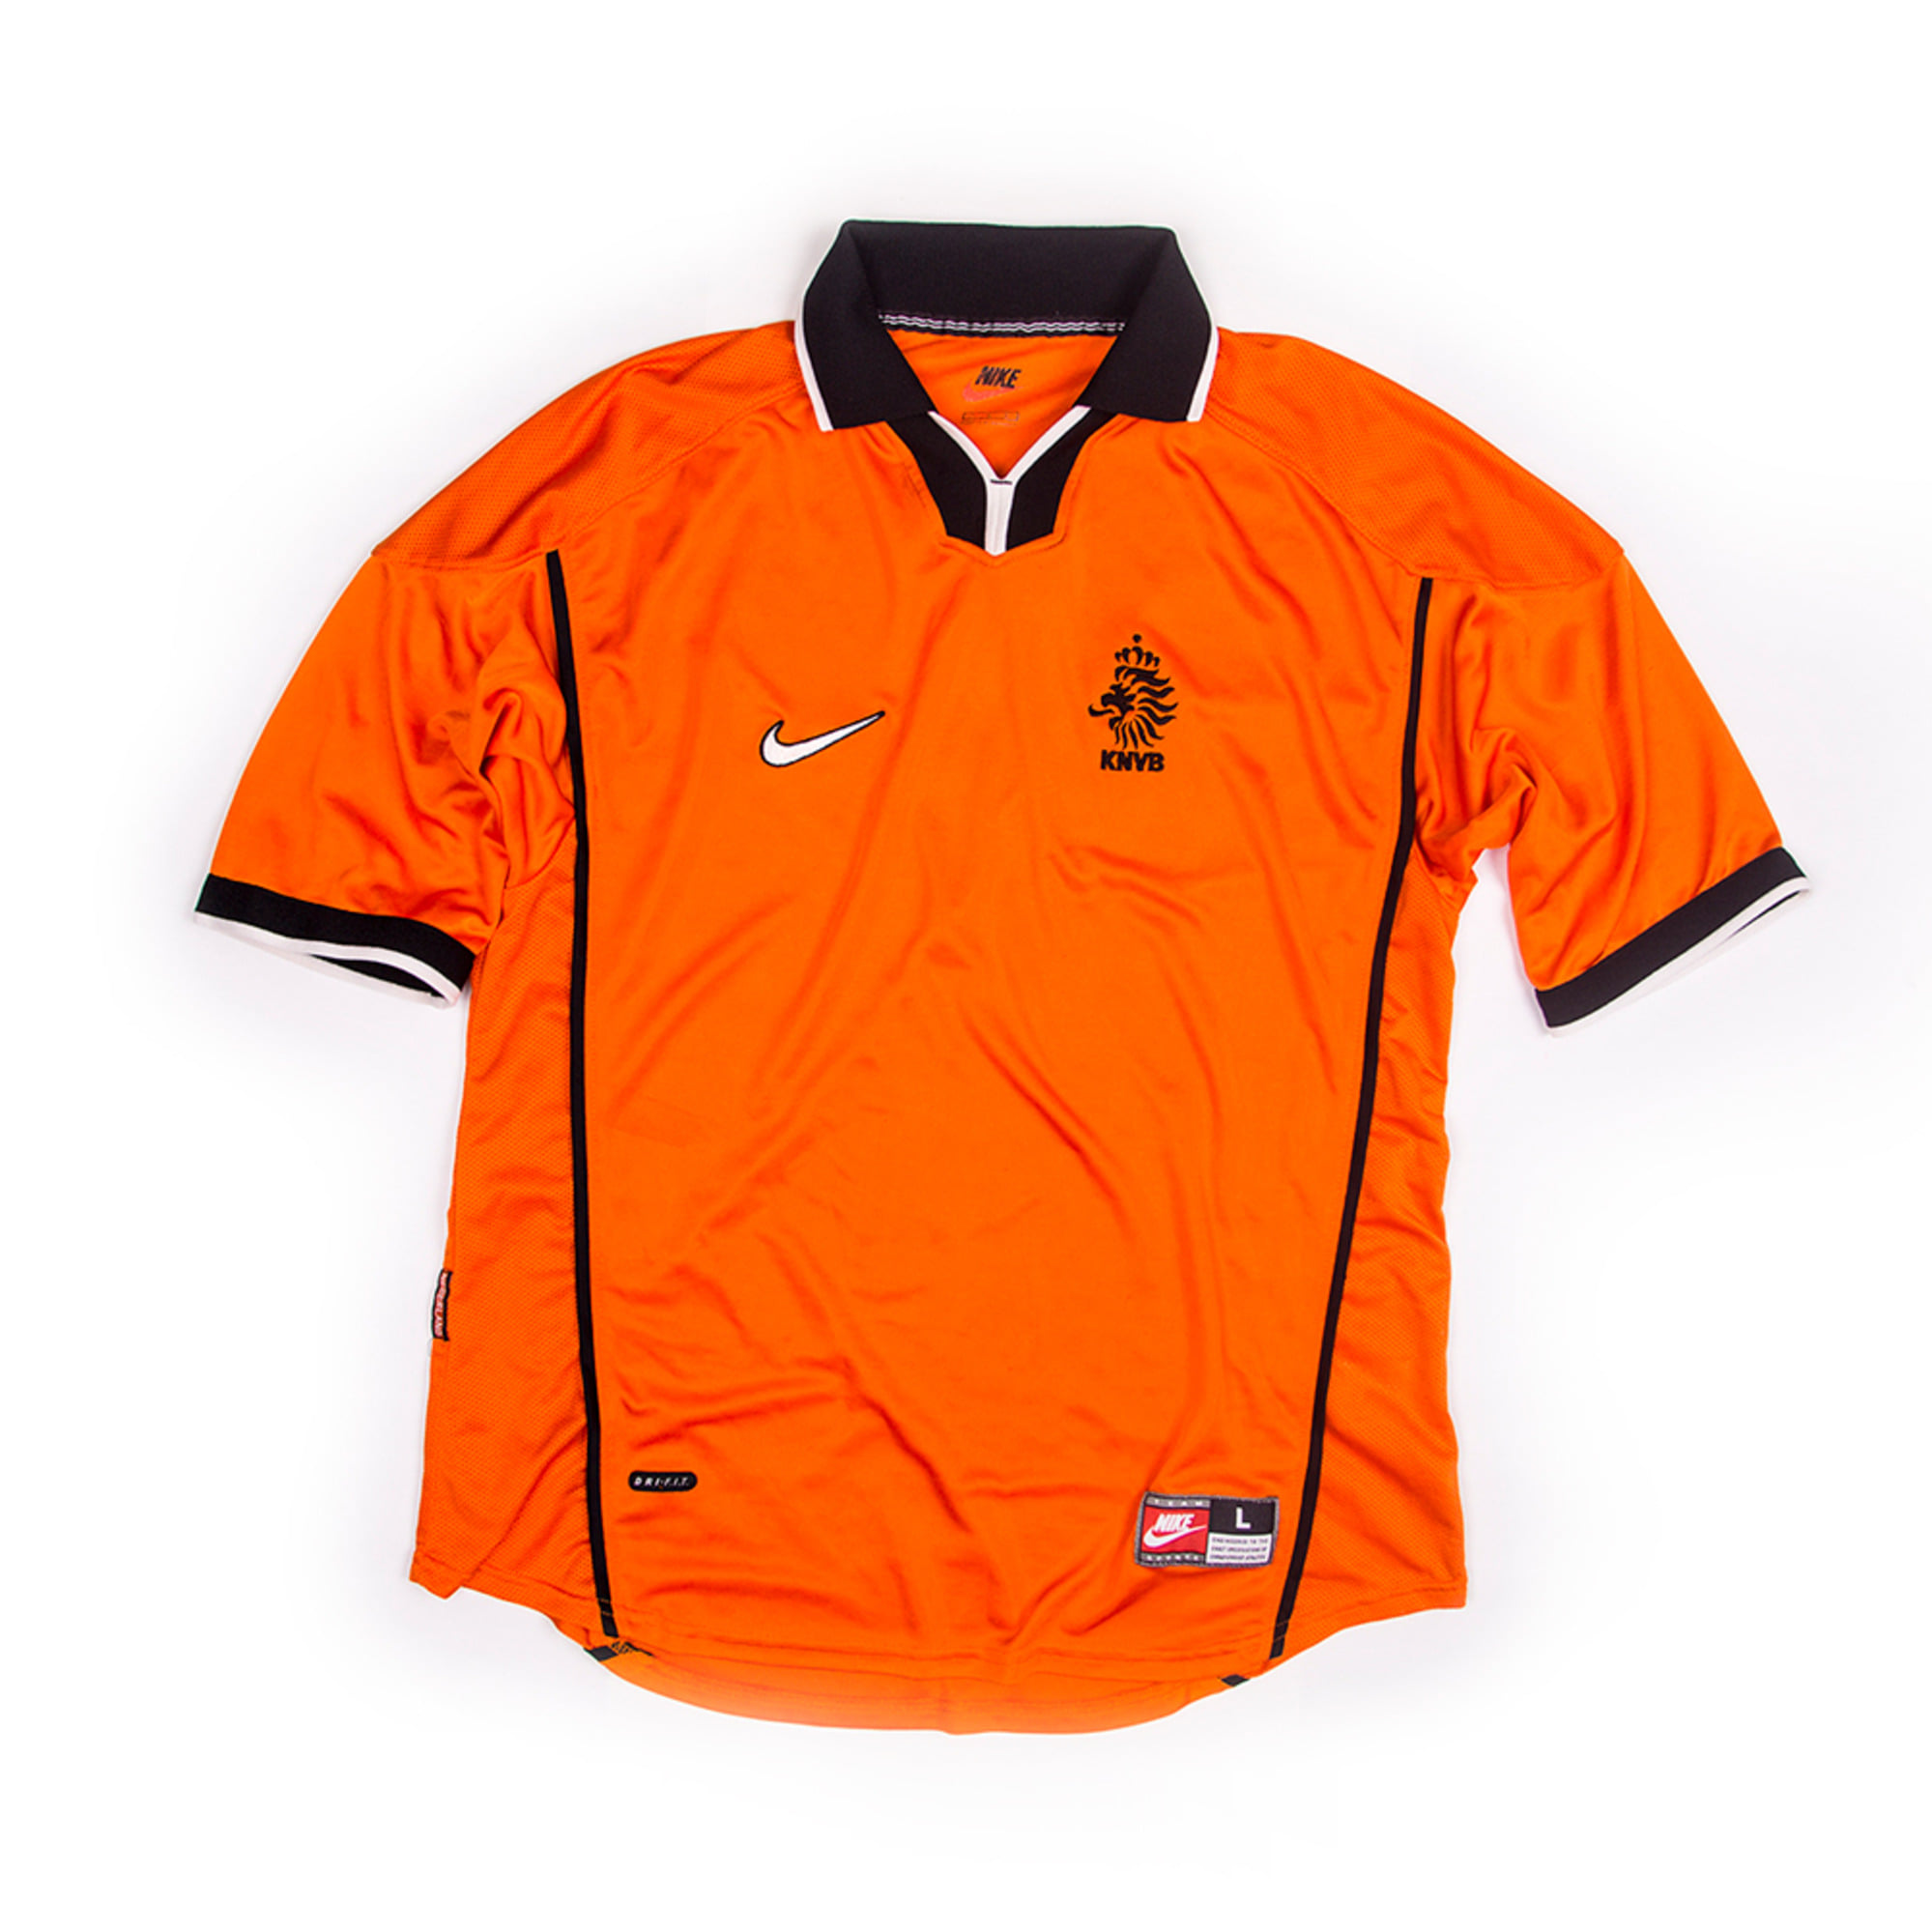 NETHERLANDS 1998-00 HOME JERSEY S/S